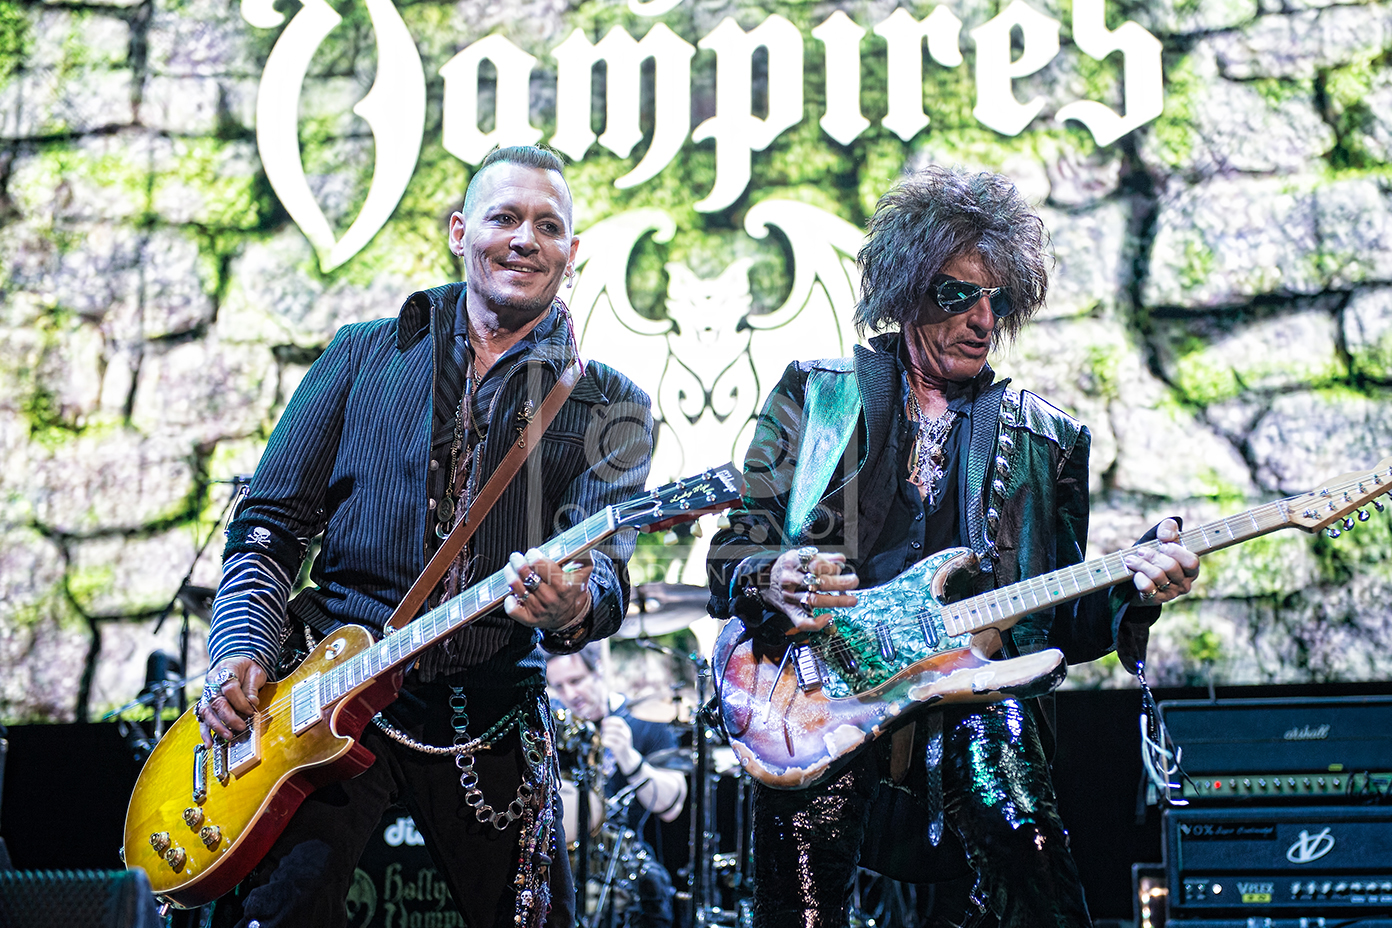 HOLLYWOOD VAMPIRES PERFORMING AT GLASGOW'S SSE HYDRO - 19,06.2018  PICTURE BY: STUART WESTWOOD PHOTOGRAPHY